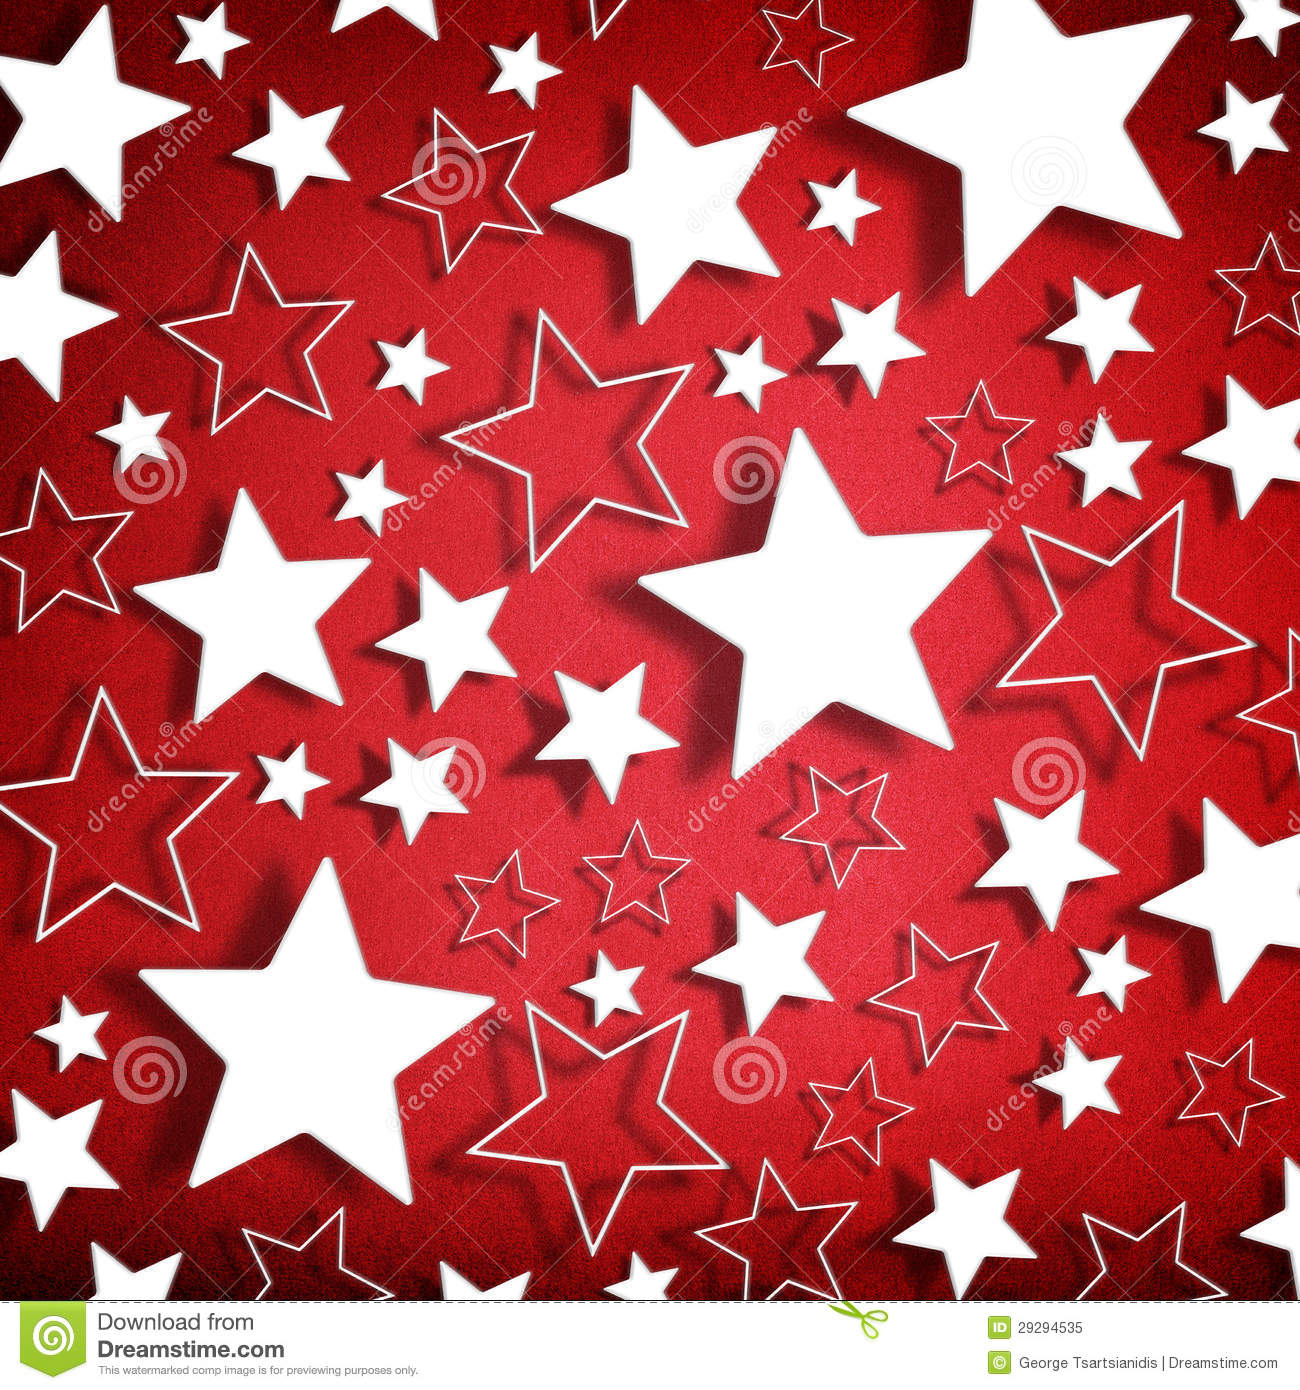 red star background - photo #42